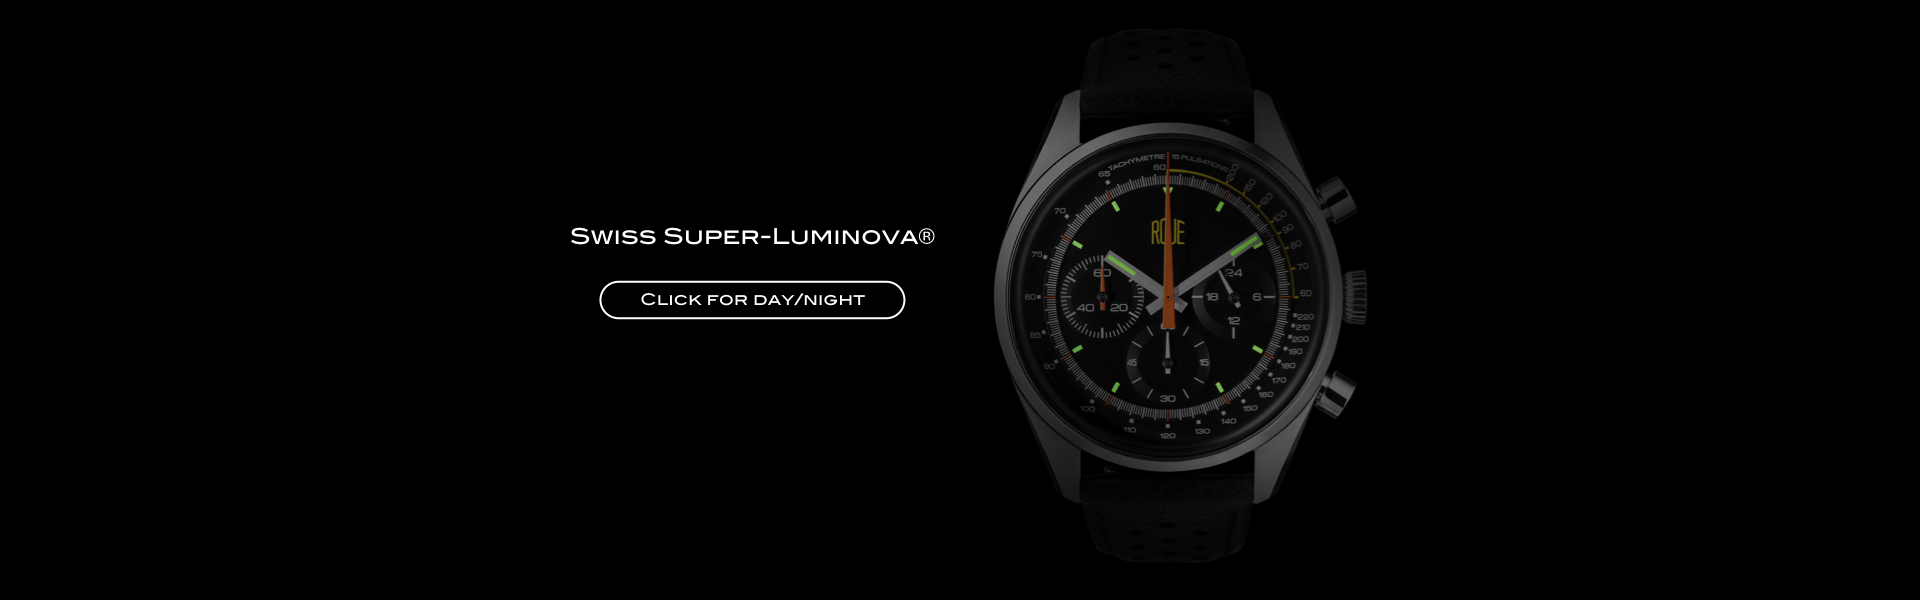 Roue Watch TPS Model - Swiss Super-Luminova®